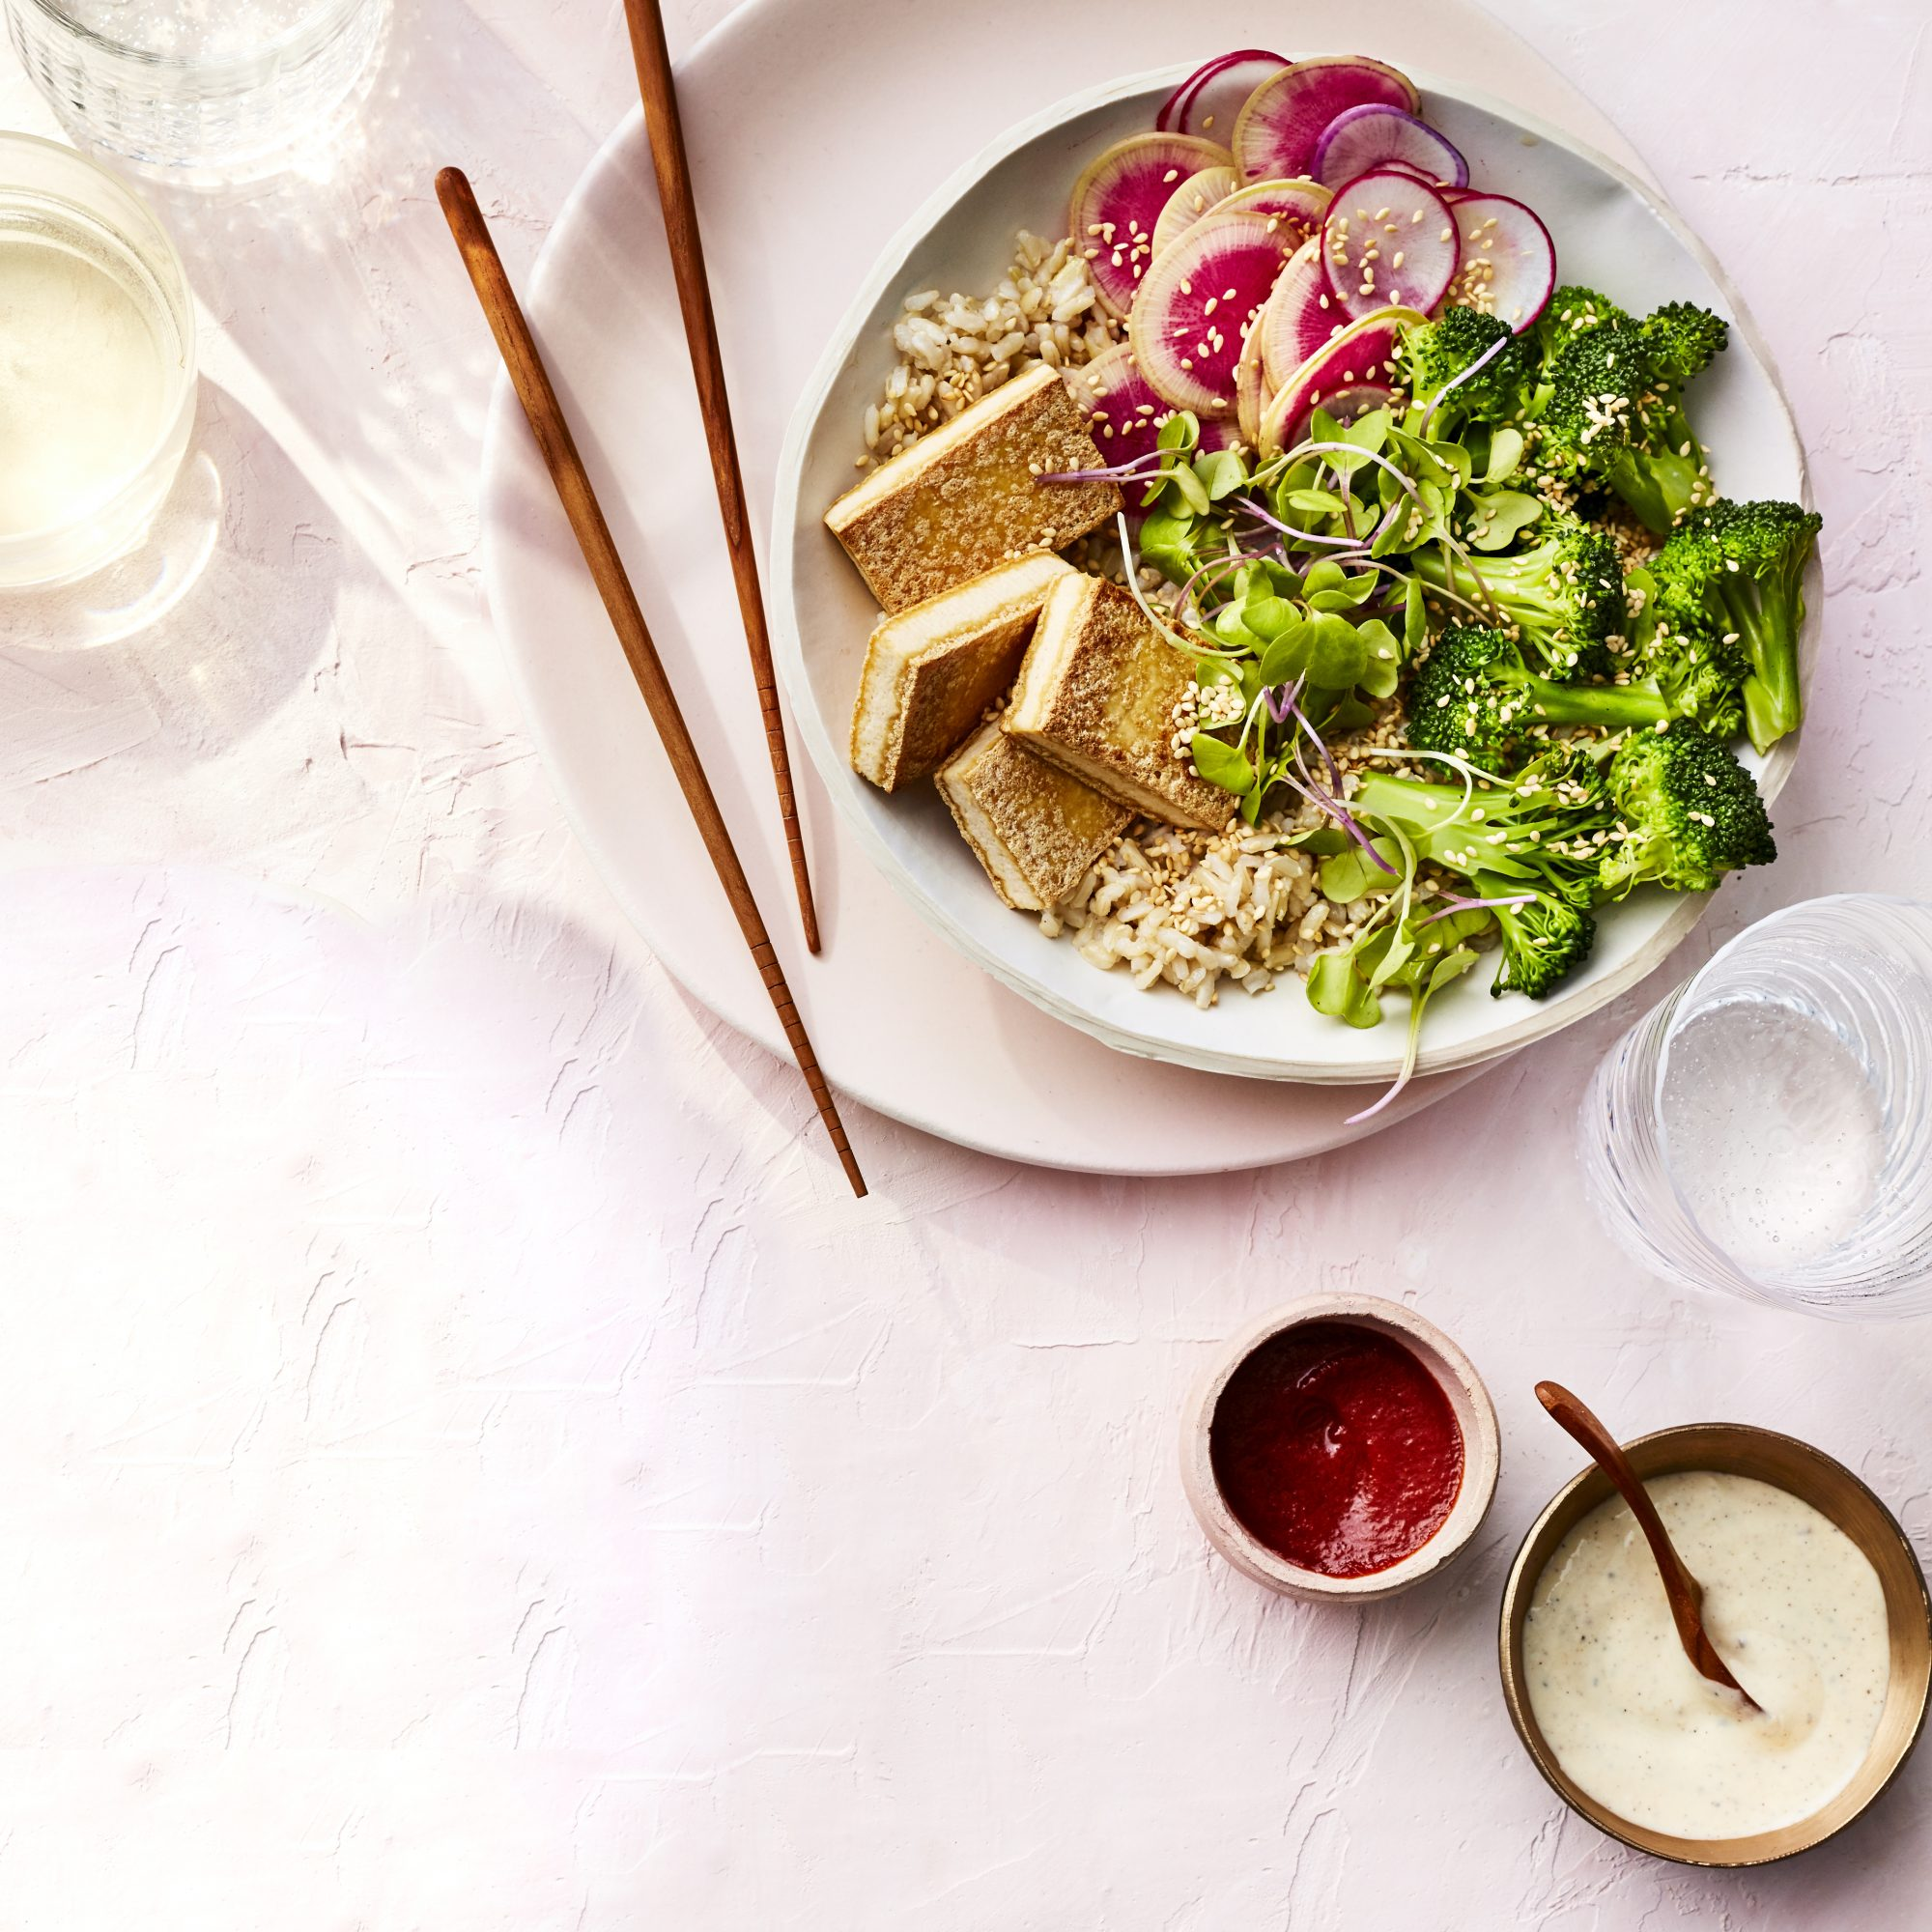 MARCH 2019 health magazine woman diet food recipe BROWN RICE BOWLS WITH TOFU, BROCCOLI, AND MISO-YOGURT DRESSING